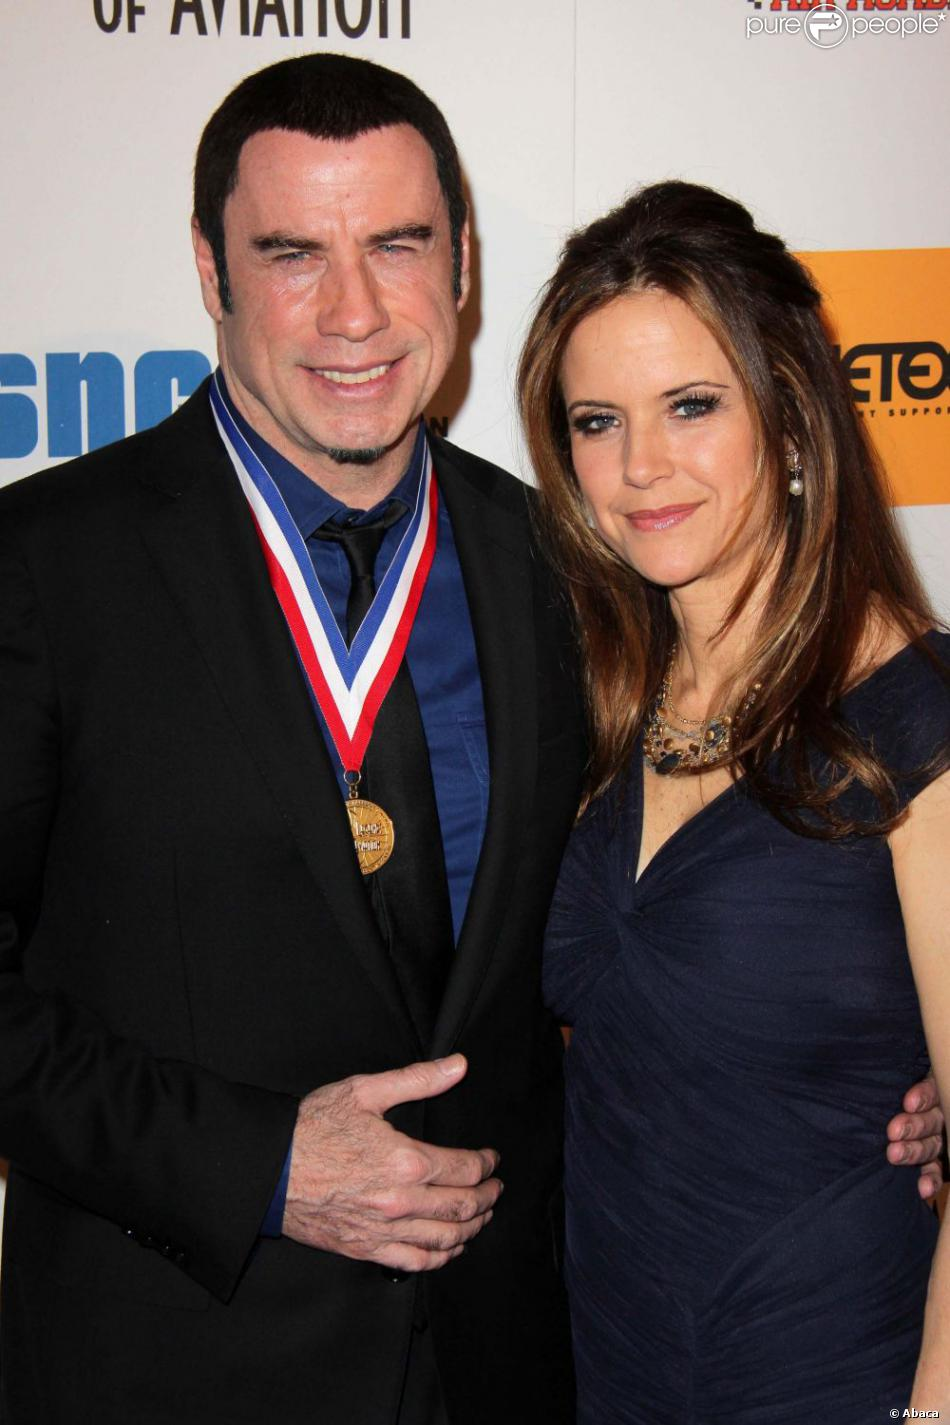 John Travolta et Kelly Preston à la 10e cérémonie annuelle Living Legends of Aviation Awards à Beverly Hills, le 18 janvier 2013.